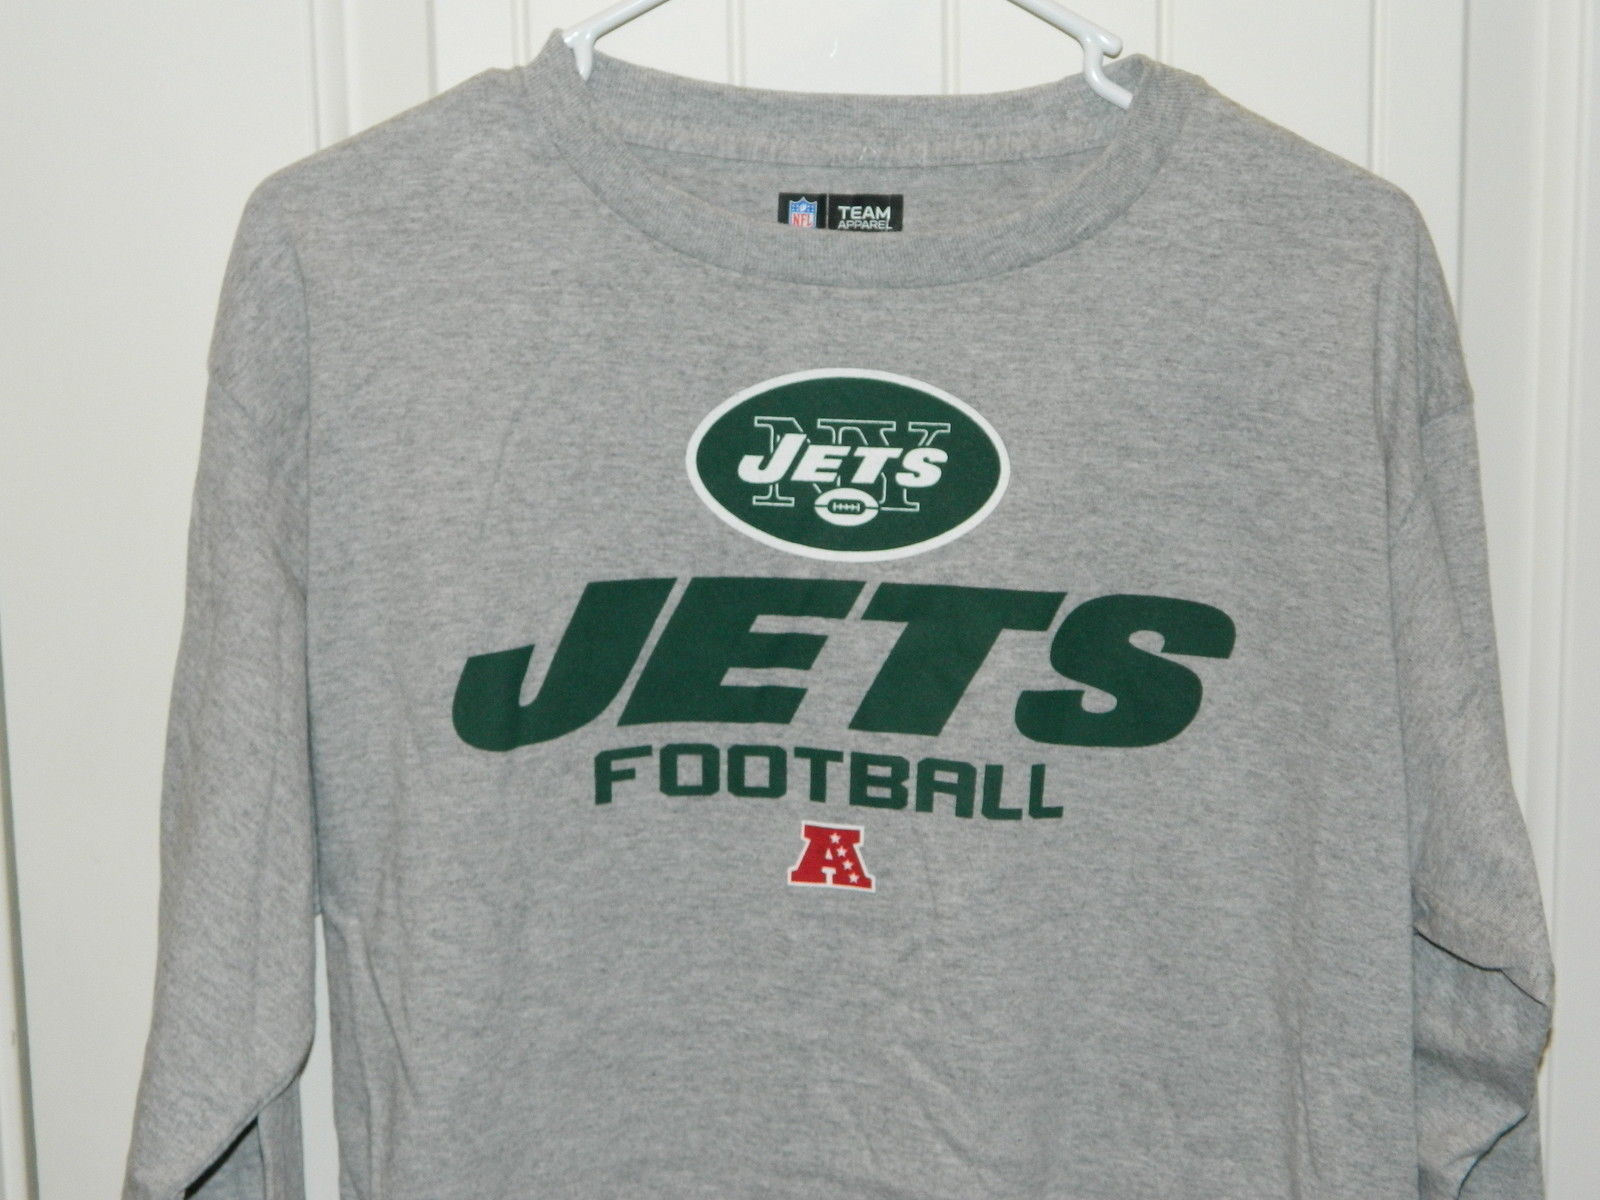 Primary image for Team New York Jets NFL Team Apparel Shirt Long sleeves Gray Mens Size Medium NWT